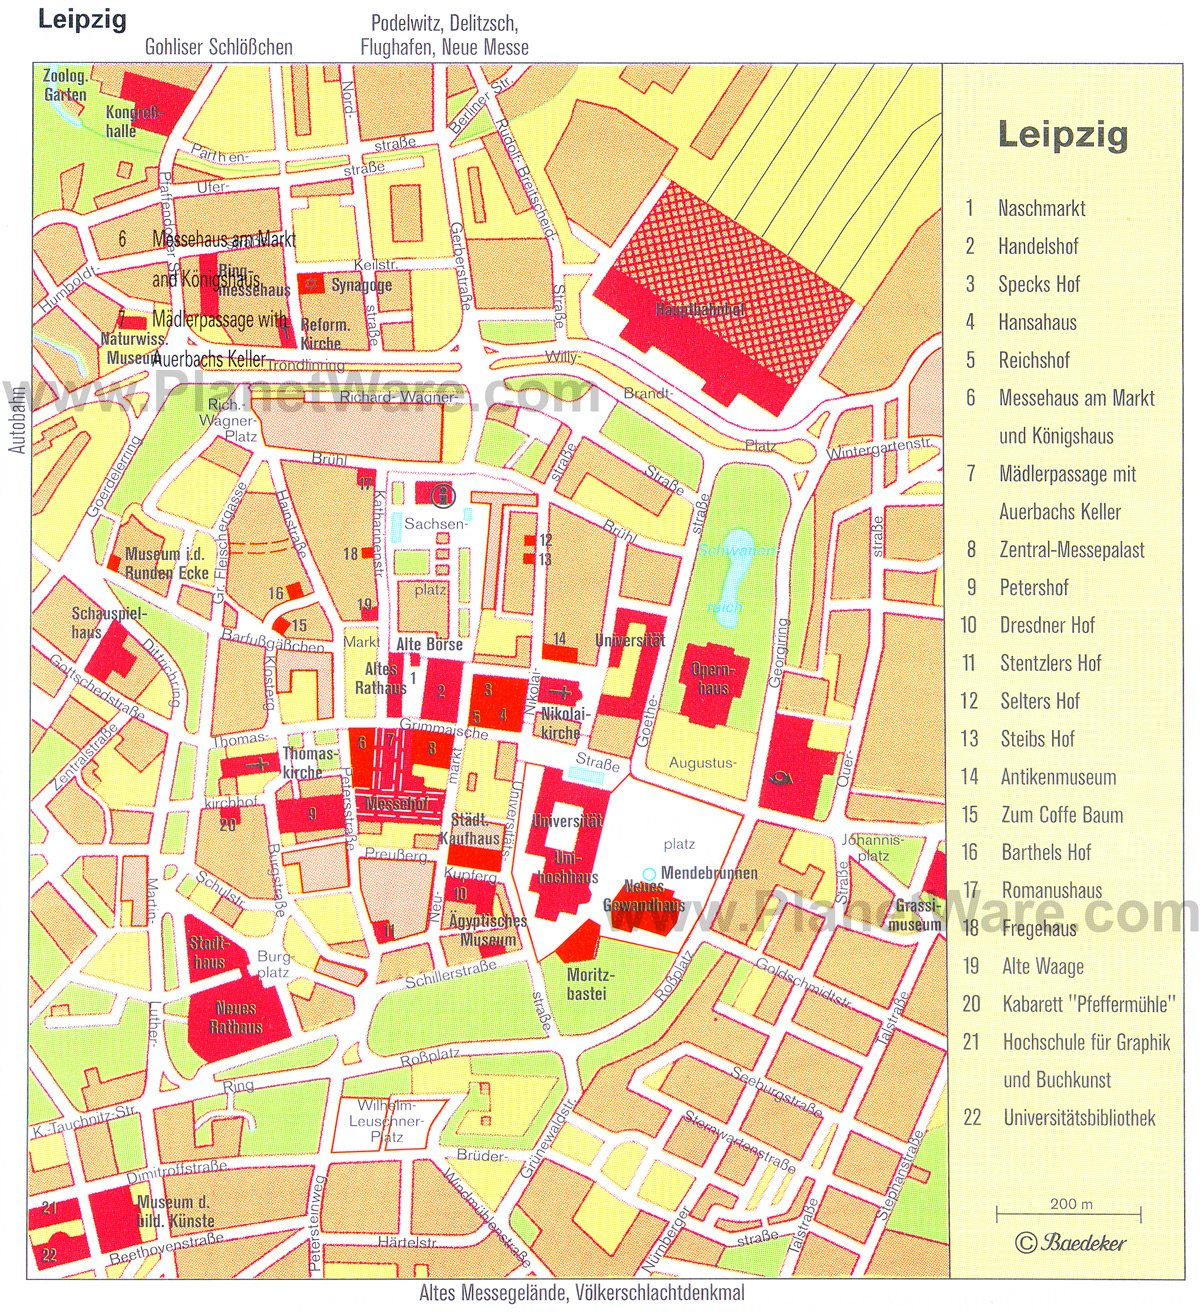 14 TopRated Tourist Attractions in Leipzig – Munich Tourist Attractions Map